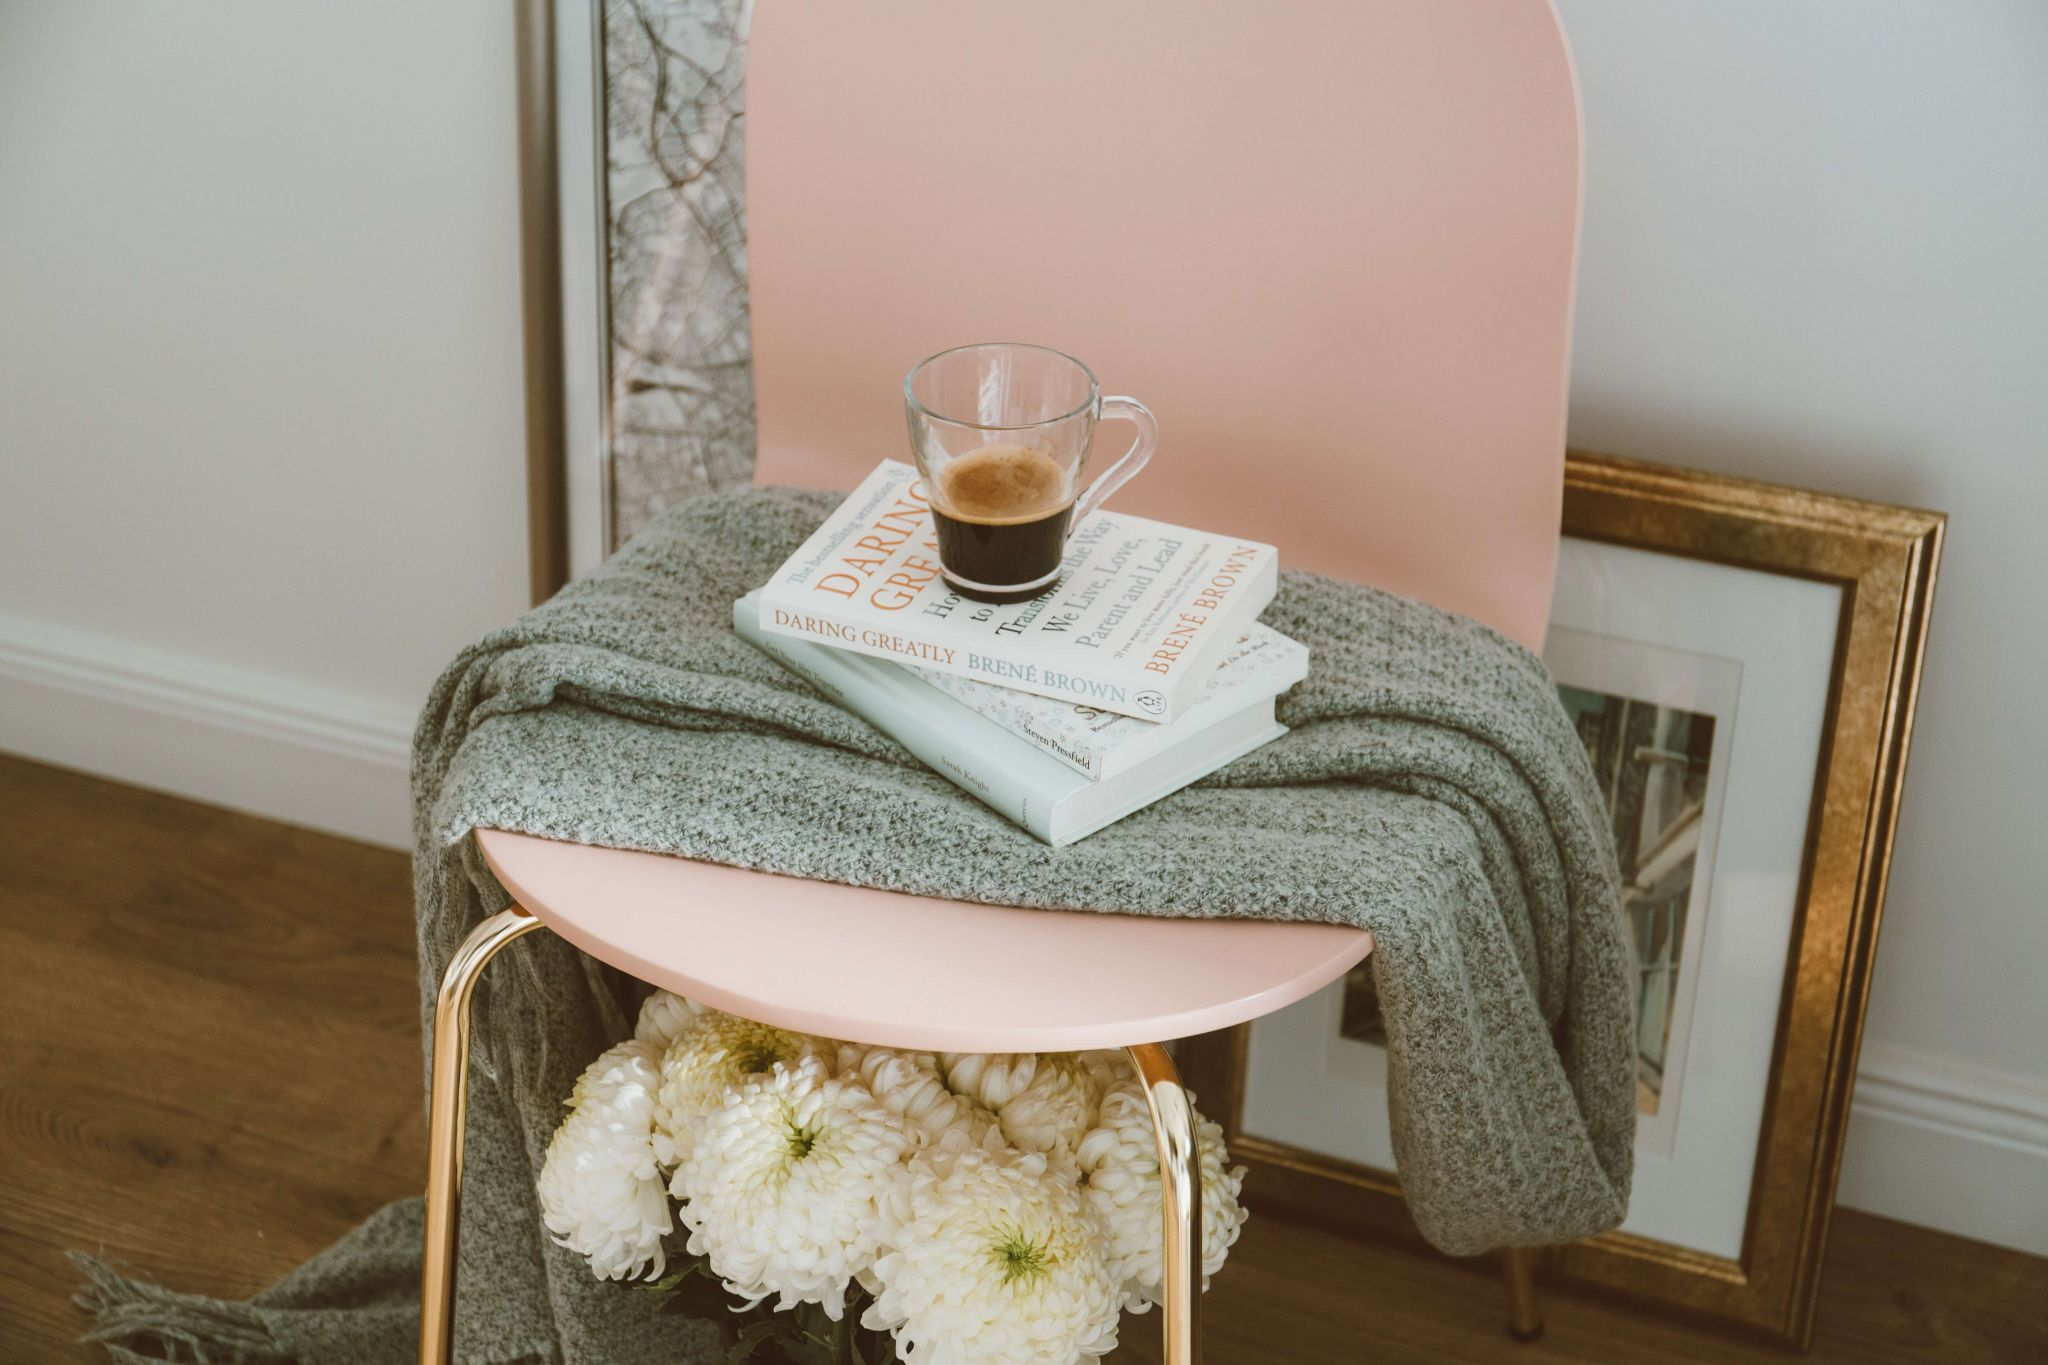 Beck Valley Books - grey throw on a pink chair with a stack of books and coffee cup on top